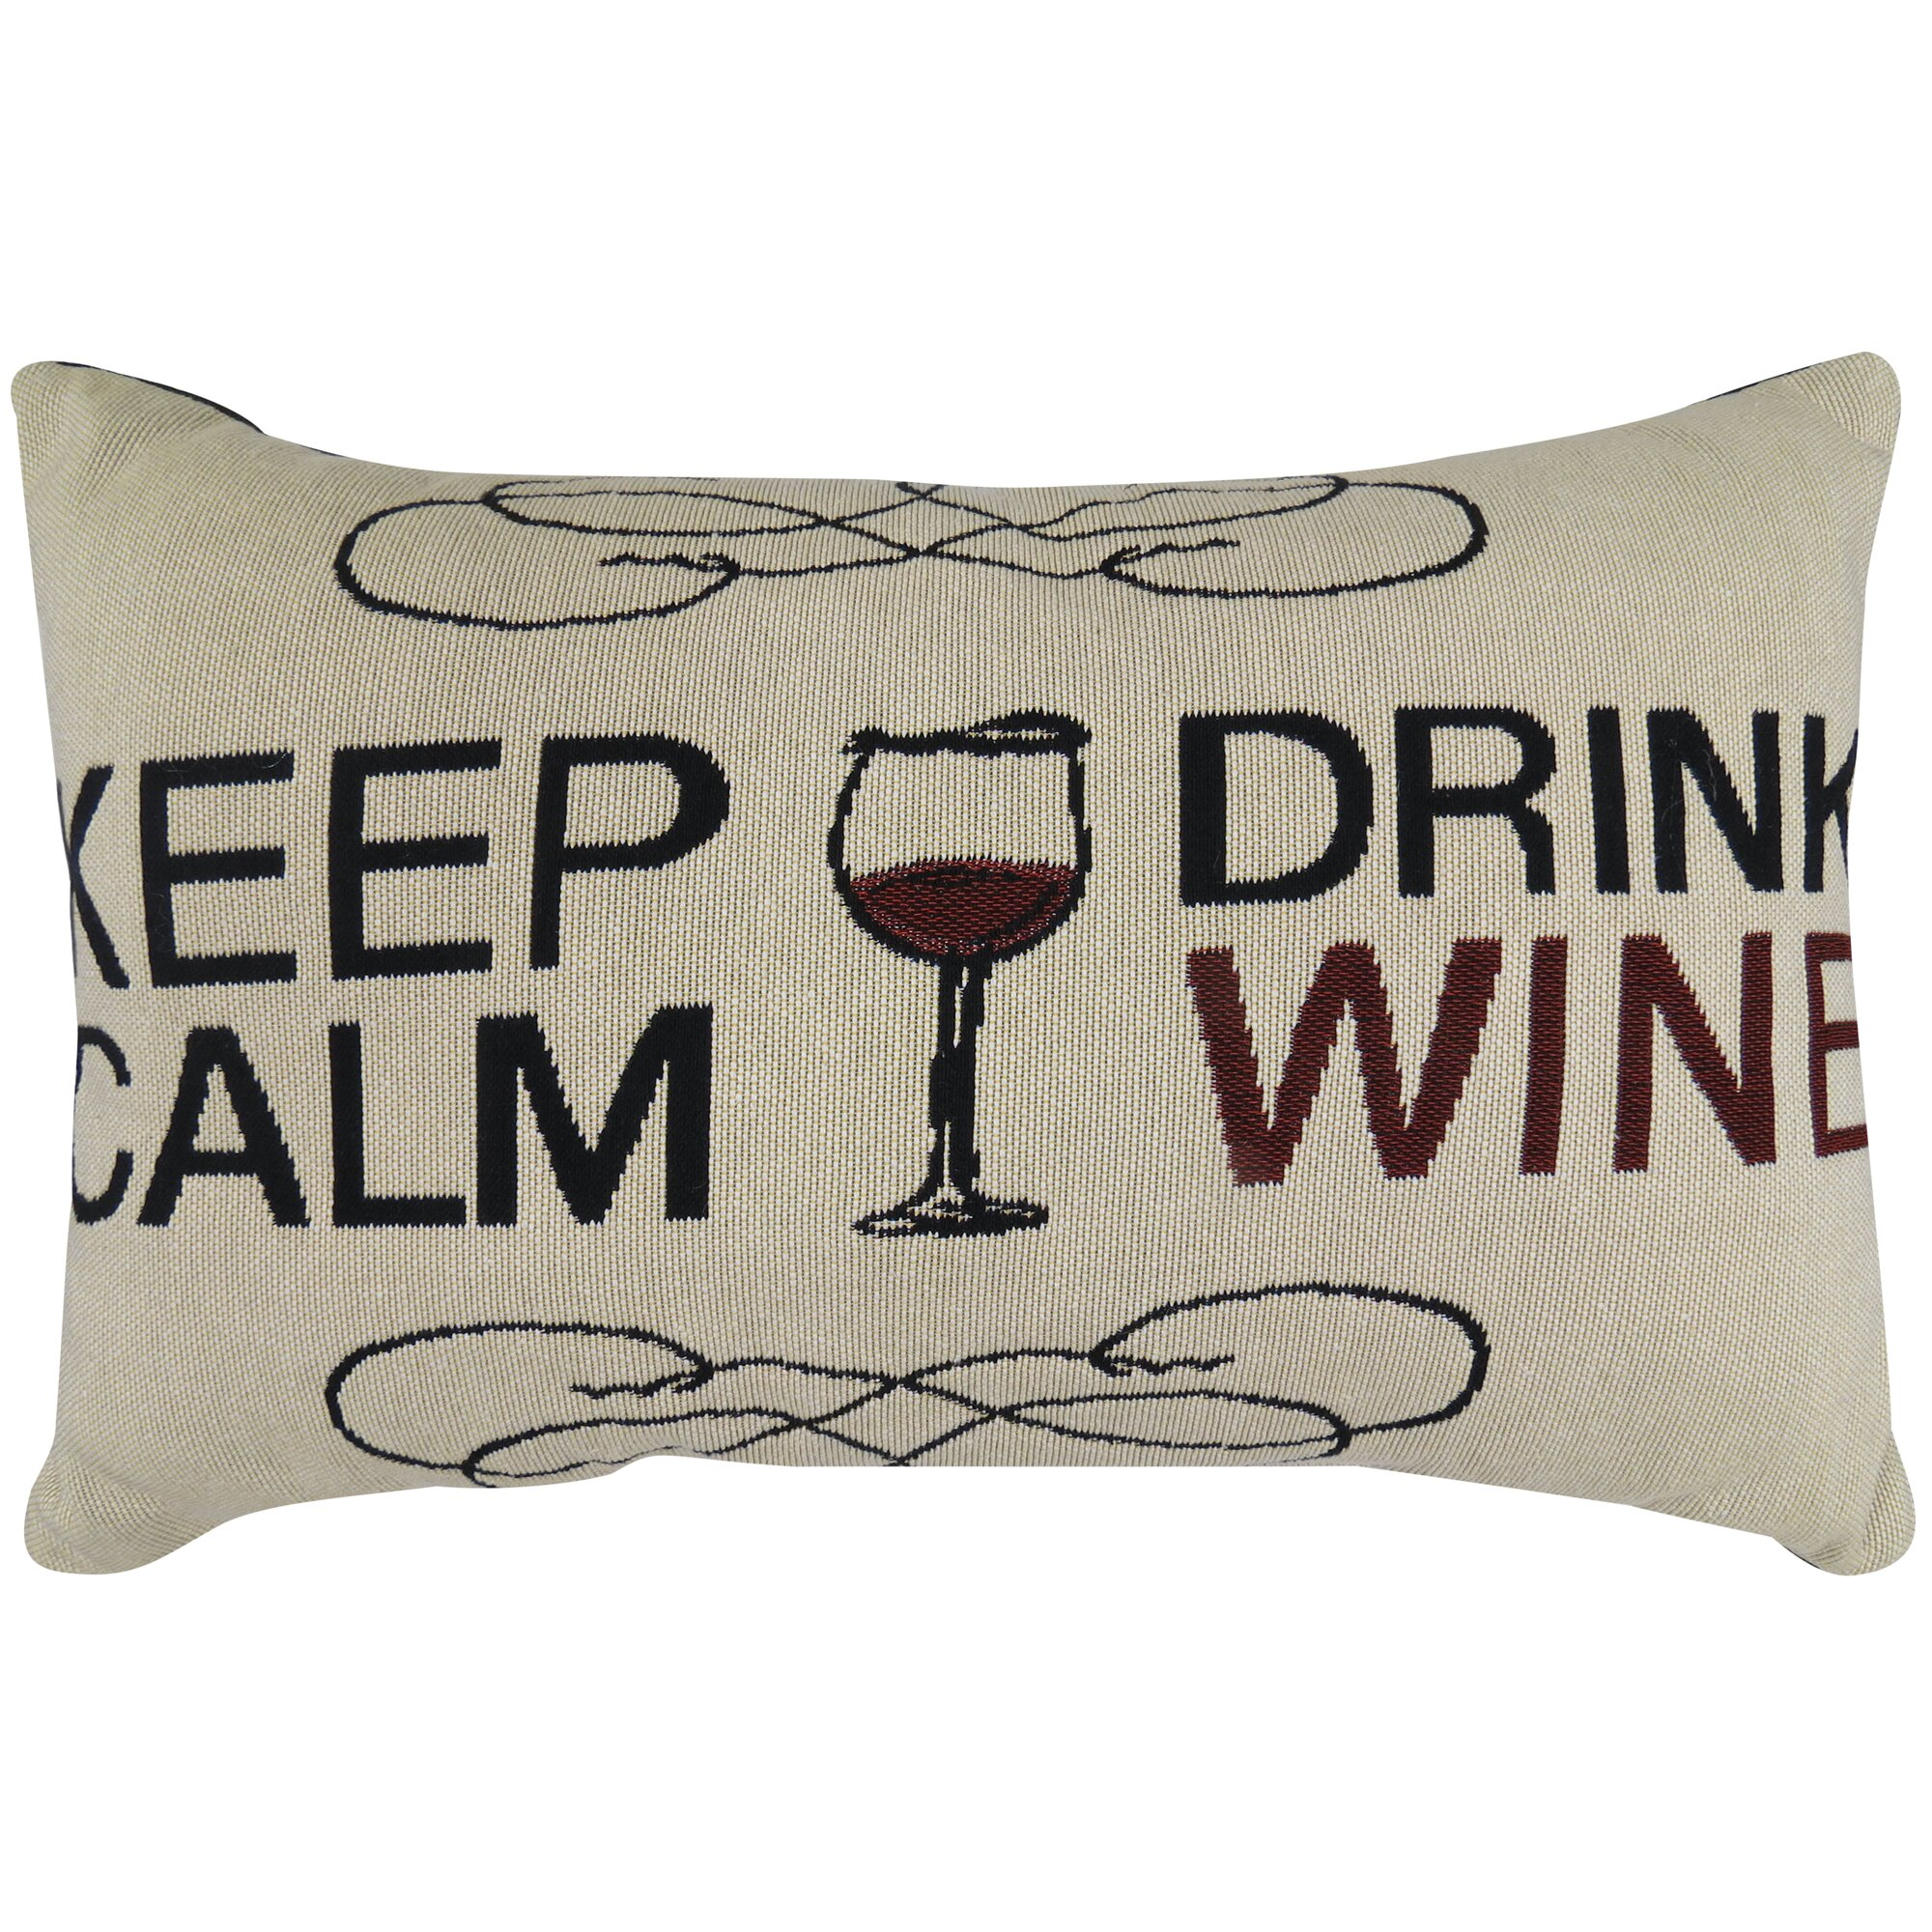 Decorative Black Lumbar Pillow : Park B Smith Ltd Keep Calm Drink Wine Tapestry Decorative Lumbar Pillow Wayfair.ca